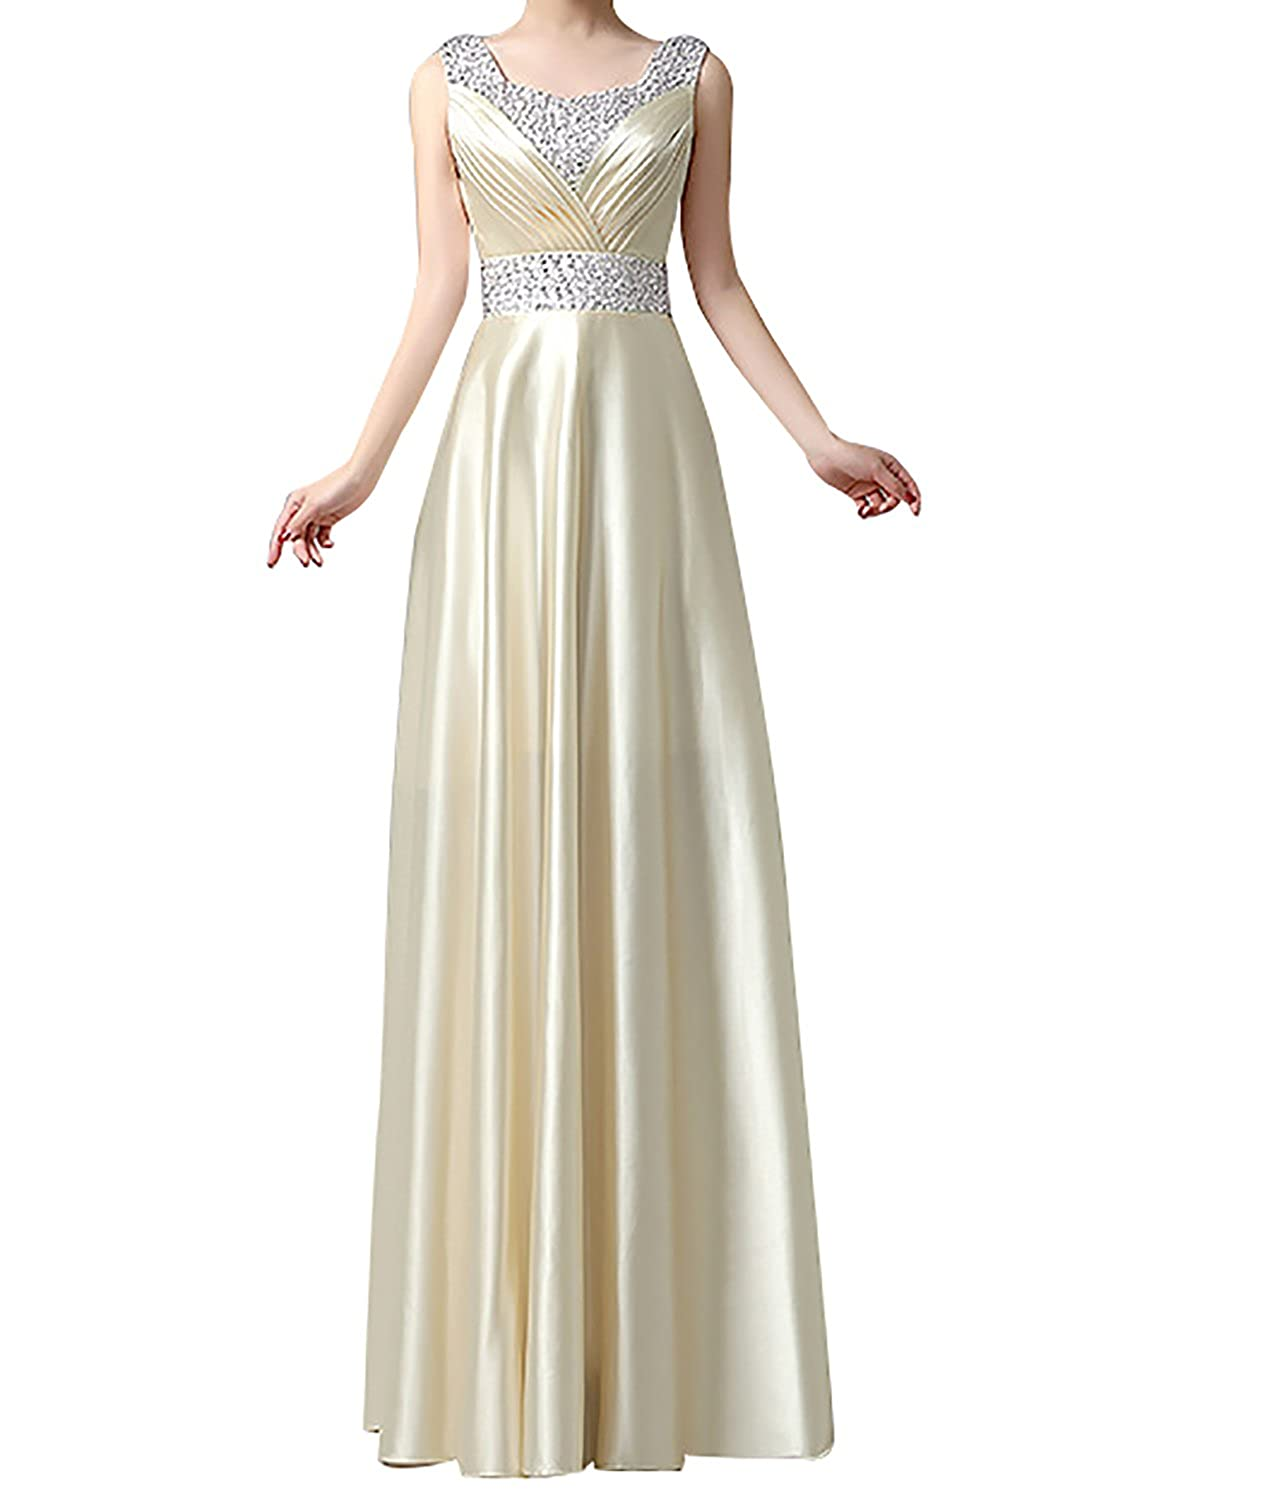 e10d52f022 UTAMALL Women s Long Straps Sleeveless Beaded Evening Formal Dress  Boat-Neck A-Line Floor Ruche Prom Party Gowns at Amazon Women s Clothing  store